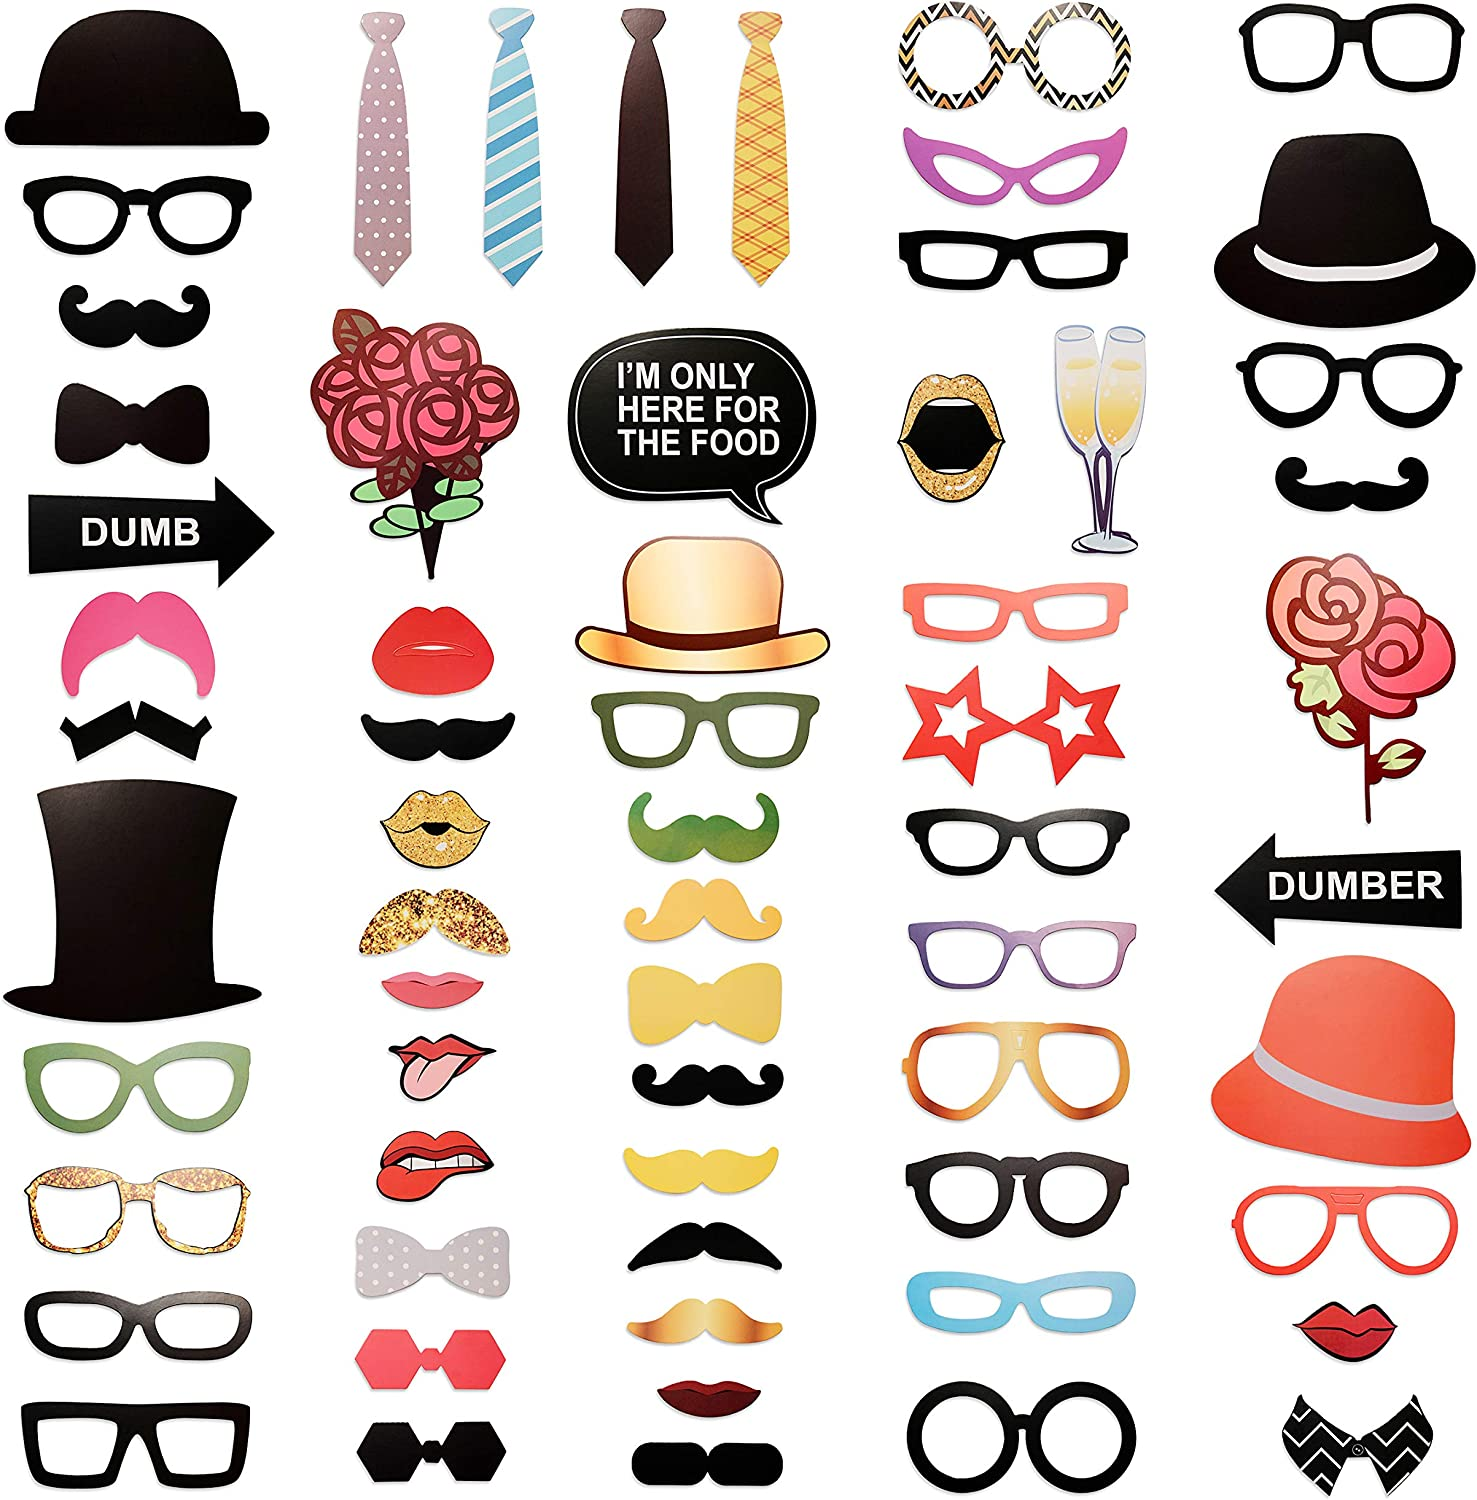 SIMBAD DIY Photo Booth Props | Birthday Party Selfies, Weddings,  Graduations (63 PCS) | All Will Enjoy Hats, Mustaches, Quotes!